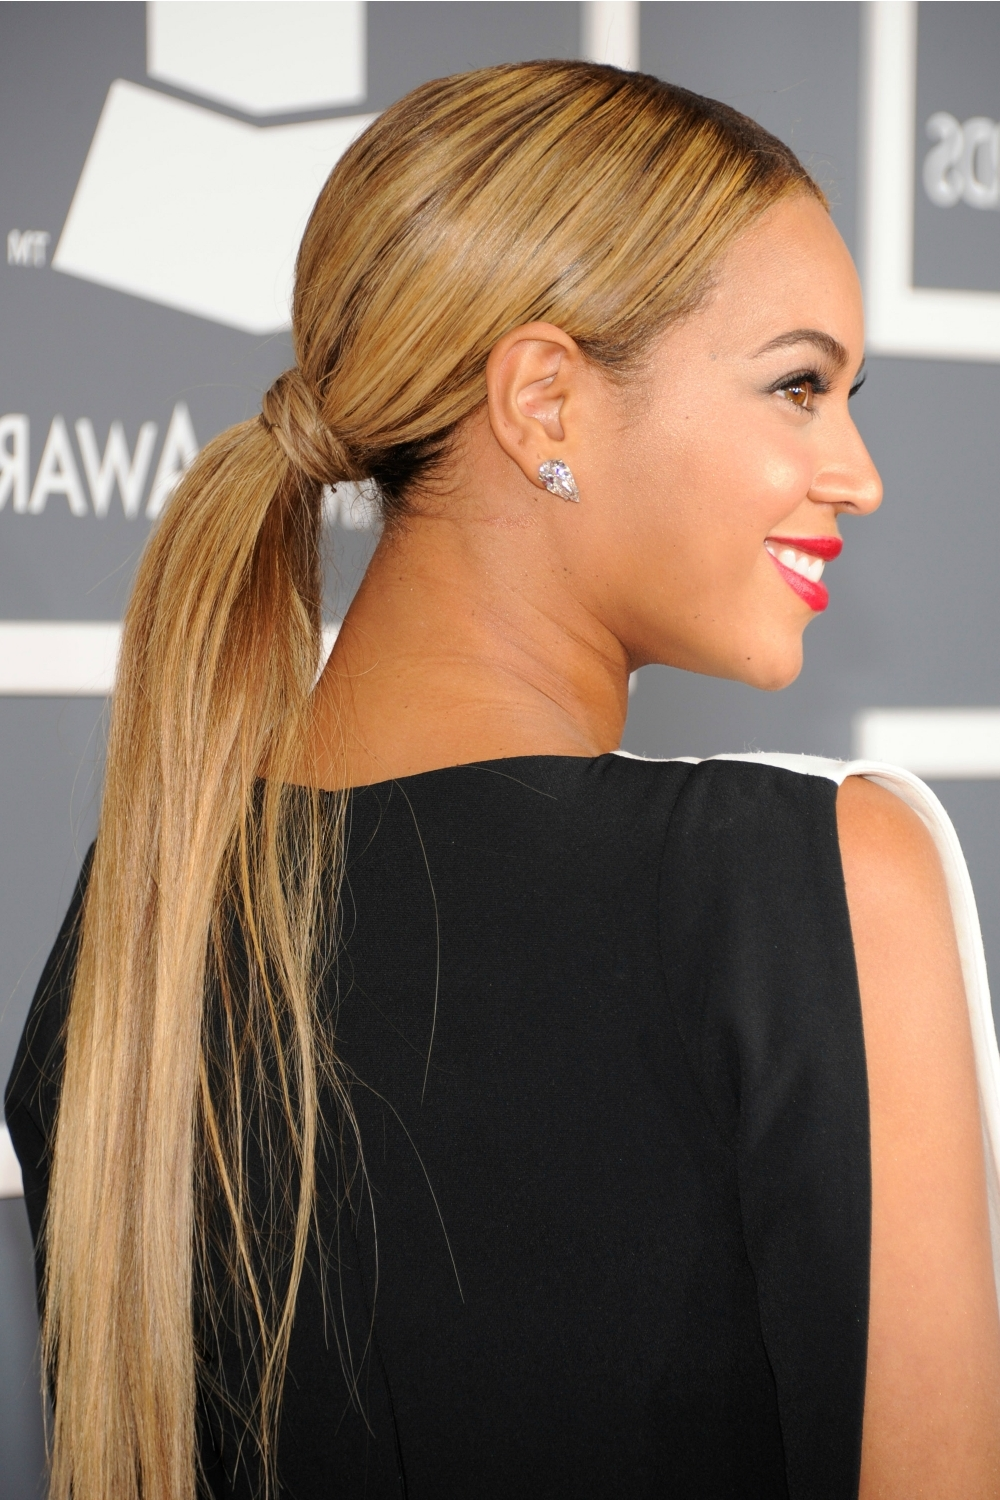 20 Ponytail Hairstyles – Easy Ponytail Ideas You Should This Summer Within Most Recent Center Parted Pony Hairstyles (View 1 of 20)